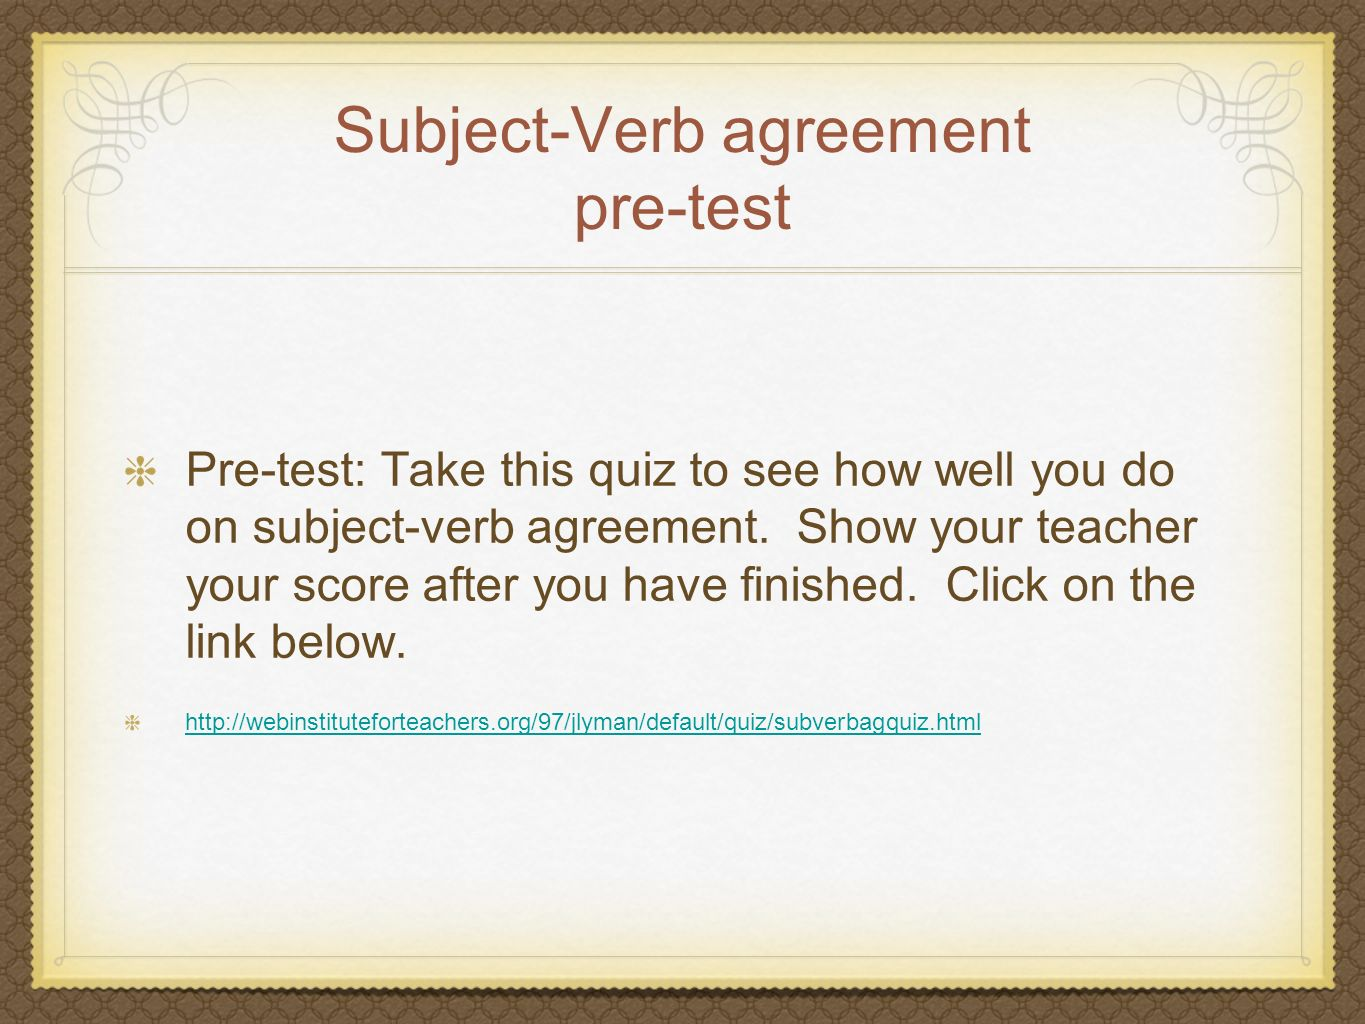 Subject-Verb agreement pre-test